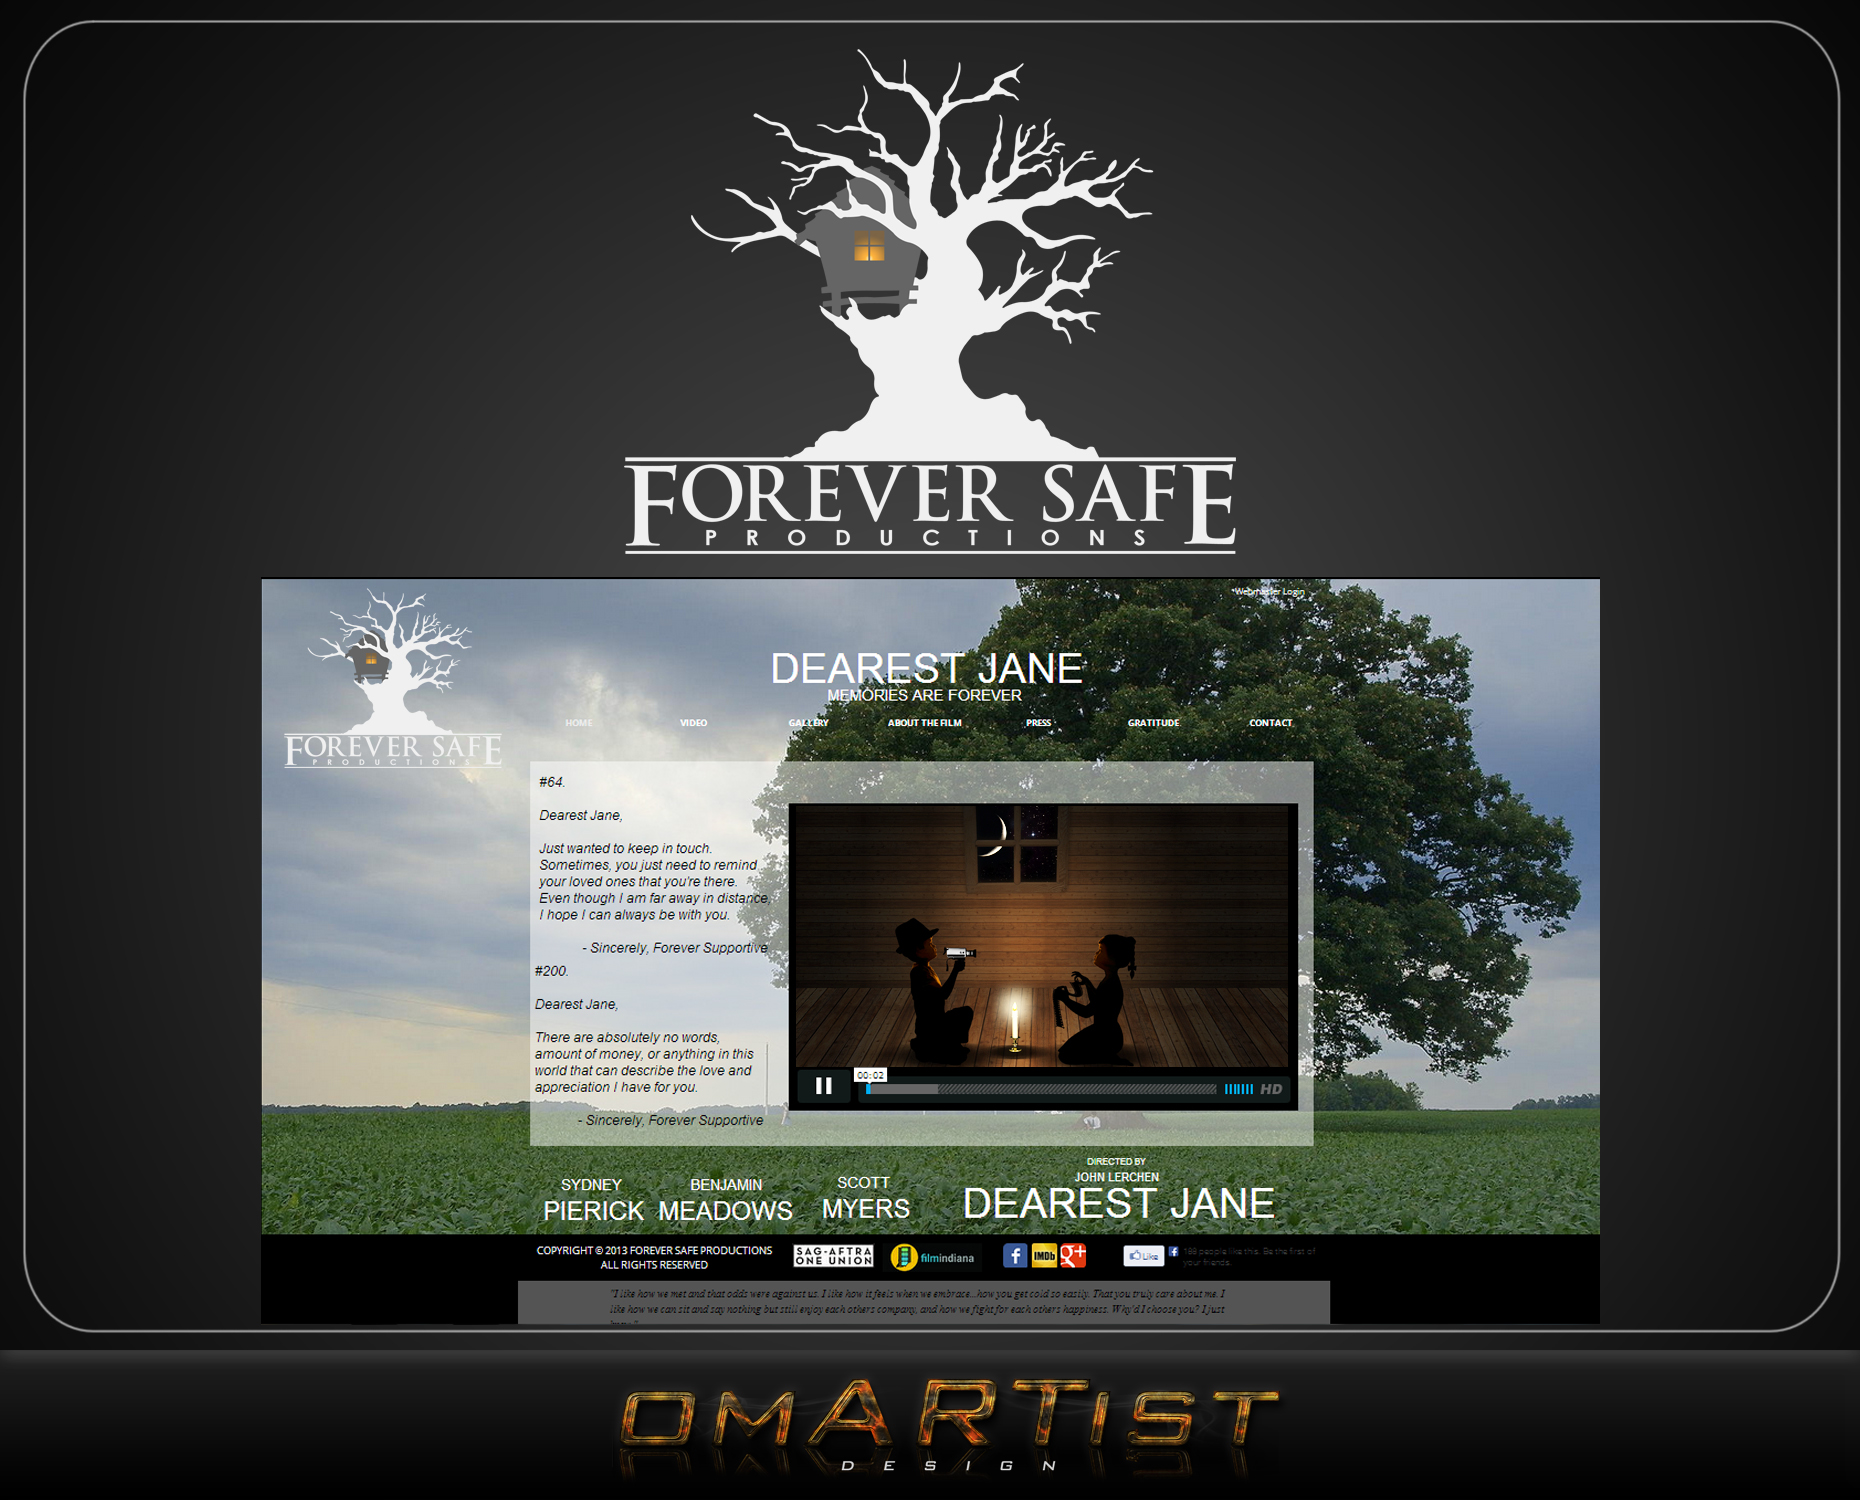 Logo Design by omARTist - Entry No. 63 in the Logo Design Contest Inspiring Logo Design for Forever Safe Productions.